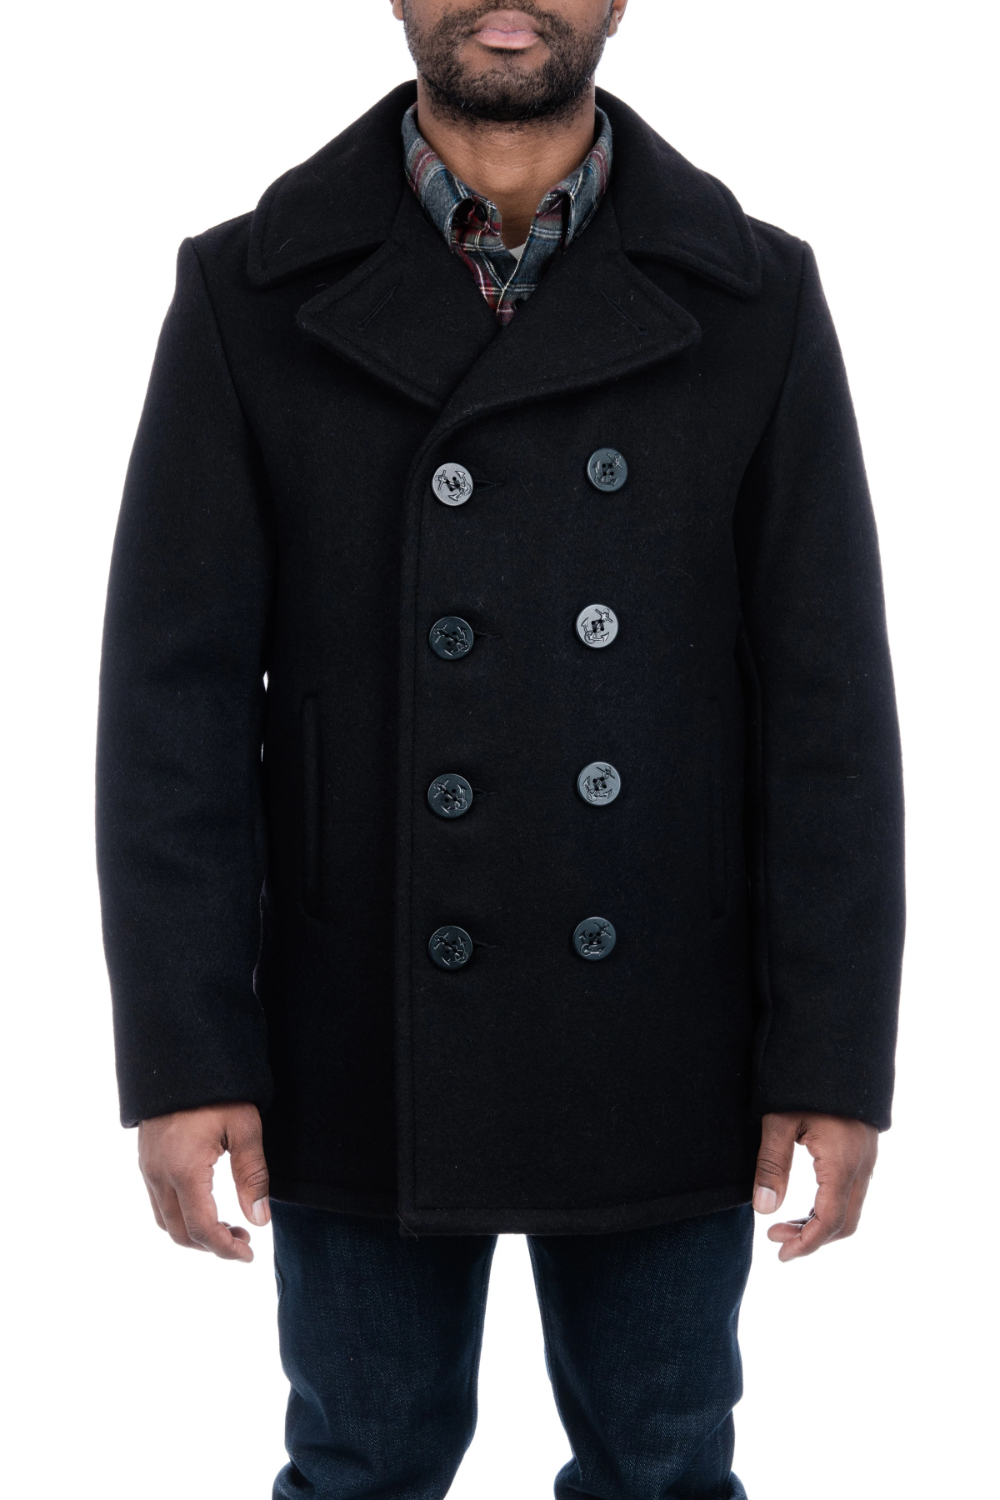 Classic Melton Wool Navy Pea Coat Navy pea coat, Coat, Wool